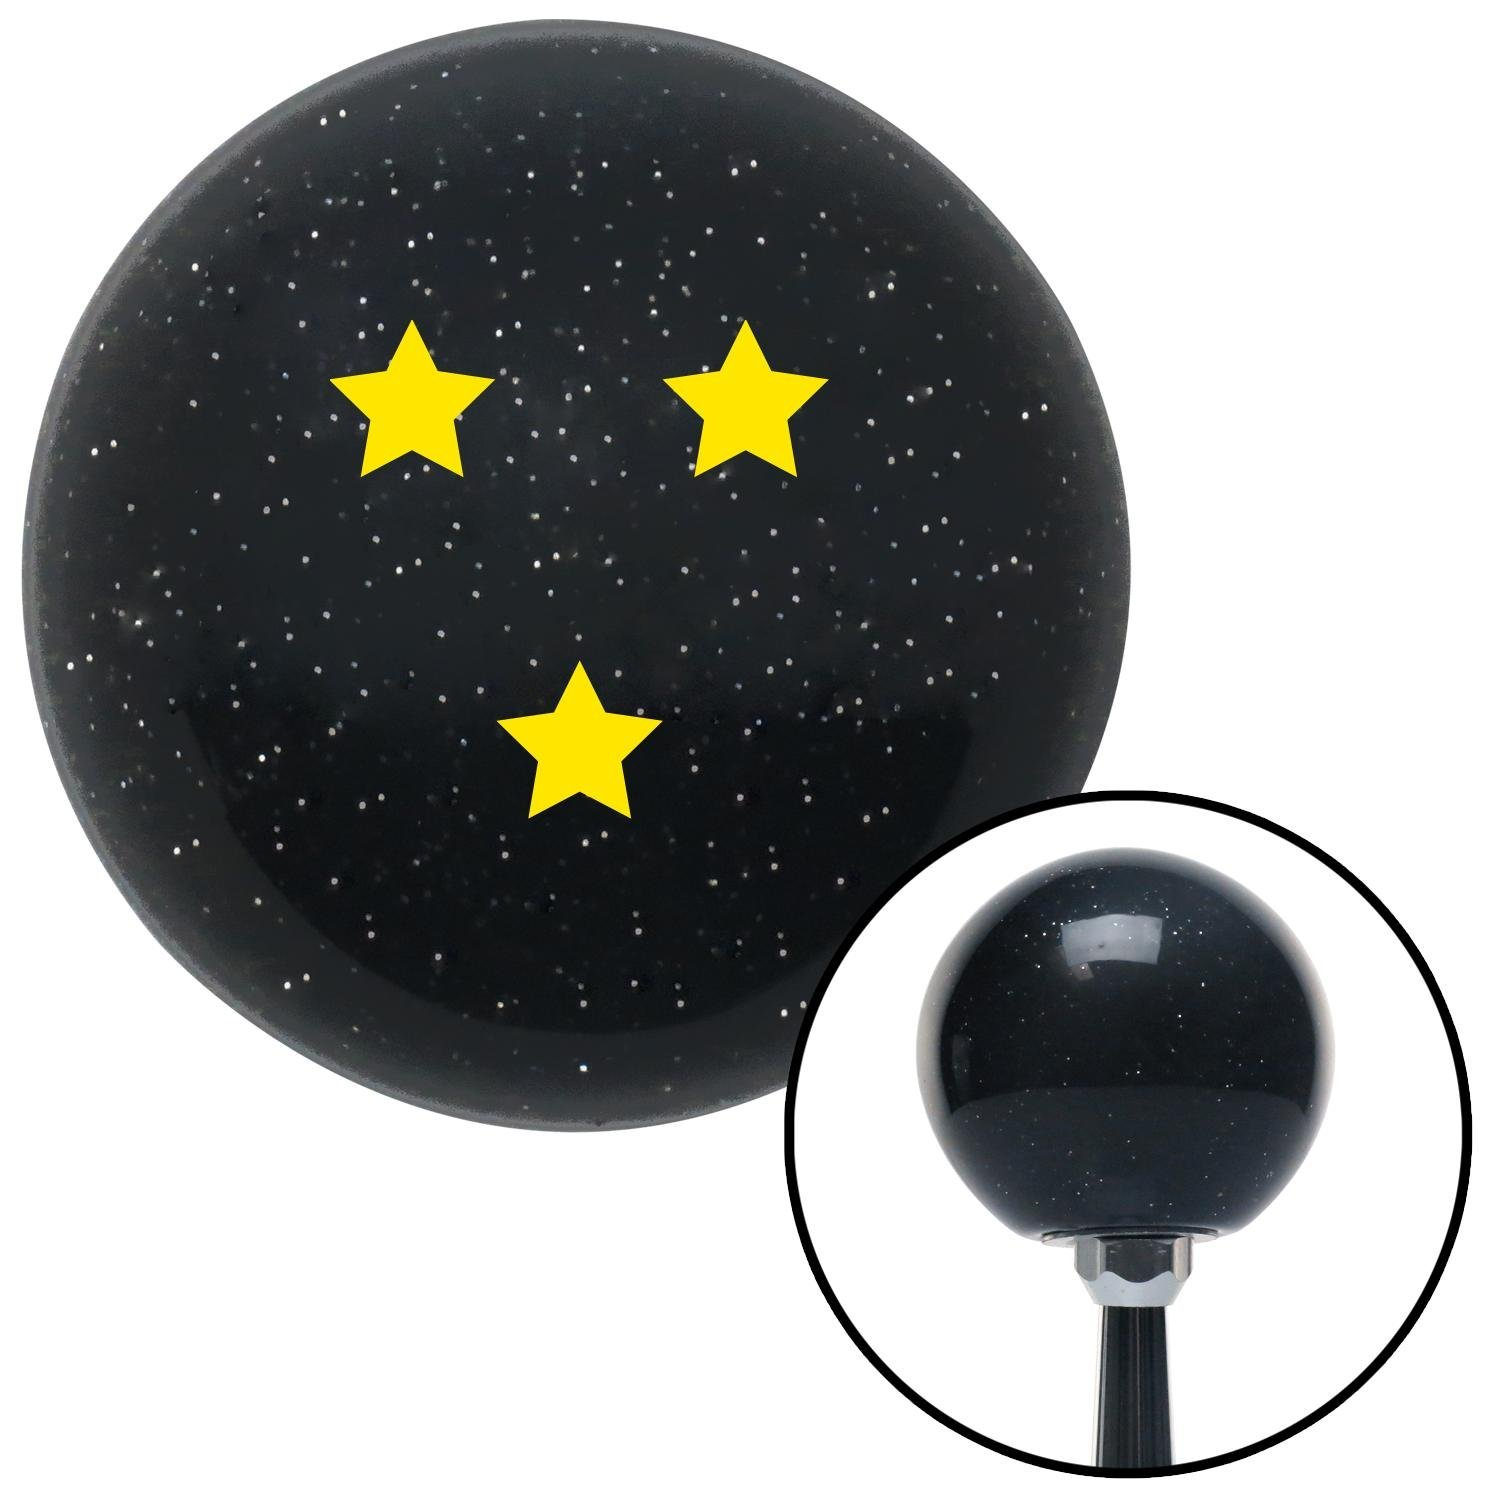 American Shifter 141952 Black Metal Flake Shift Knob with M16 x 1.5 Insert Yellow Dragon Ball Z - 3 Star